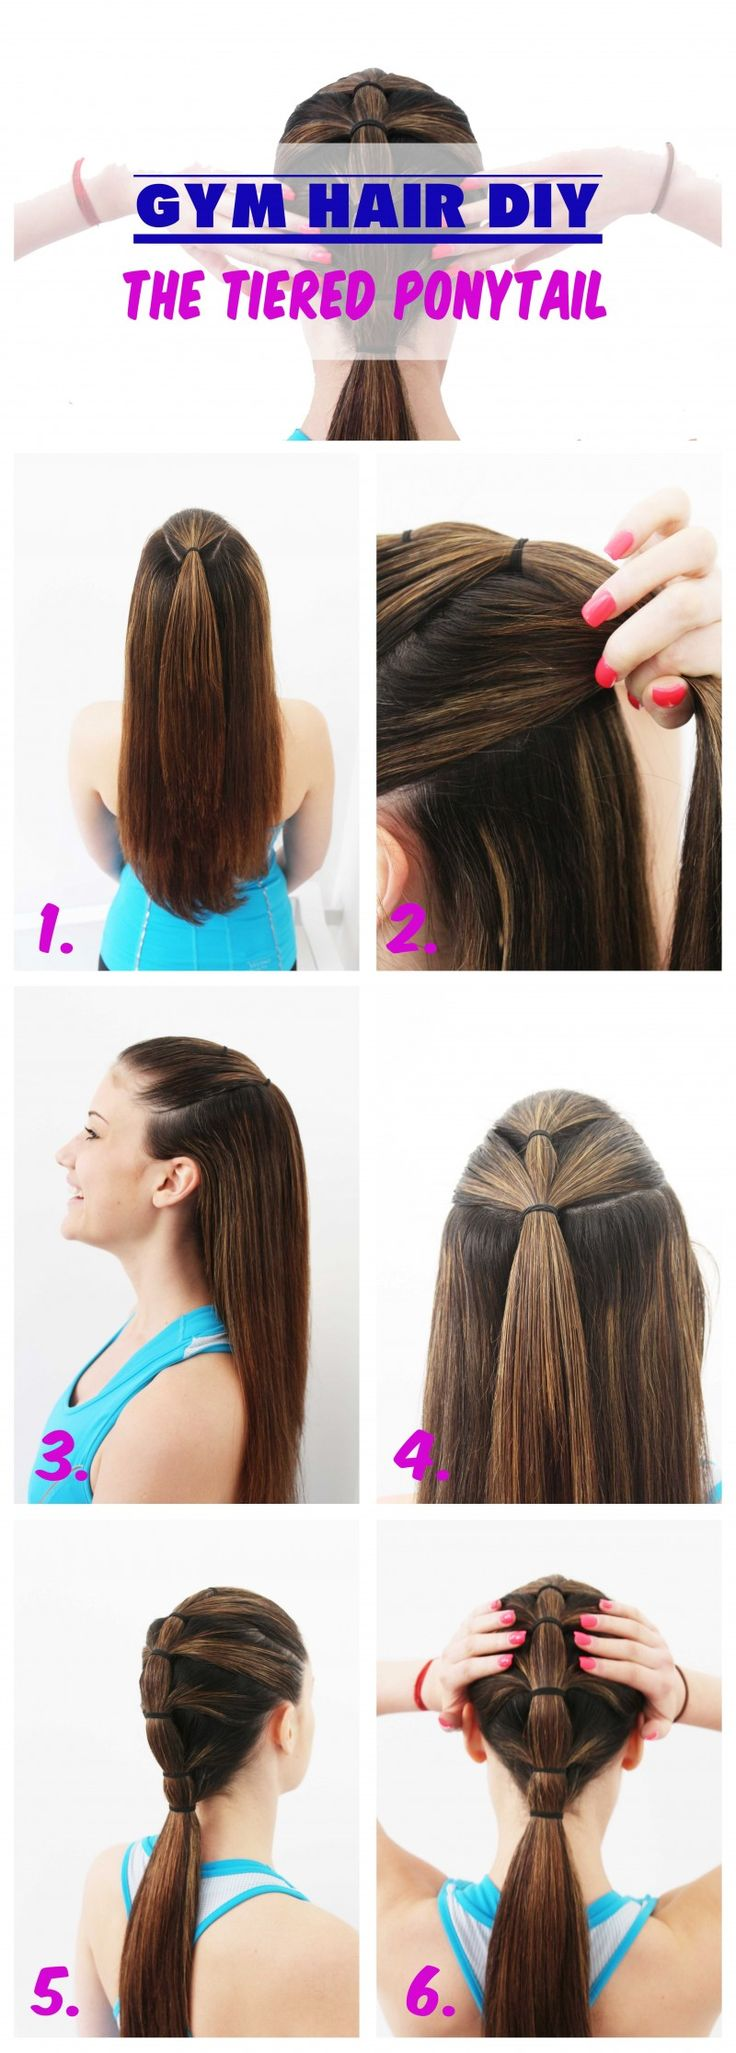 Gym Hair Tutorial: The Tiered Ponytail